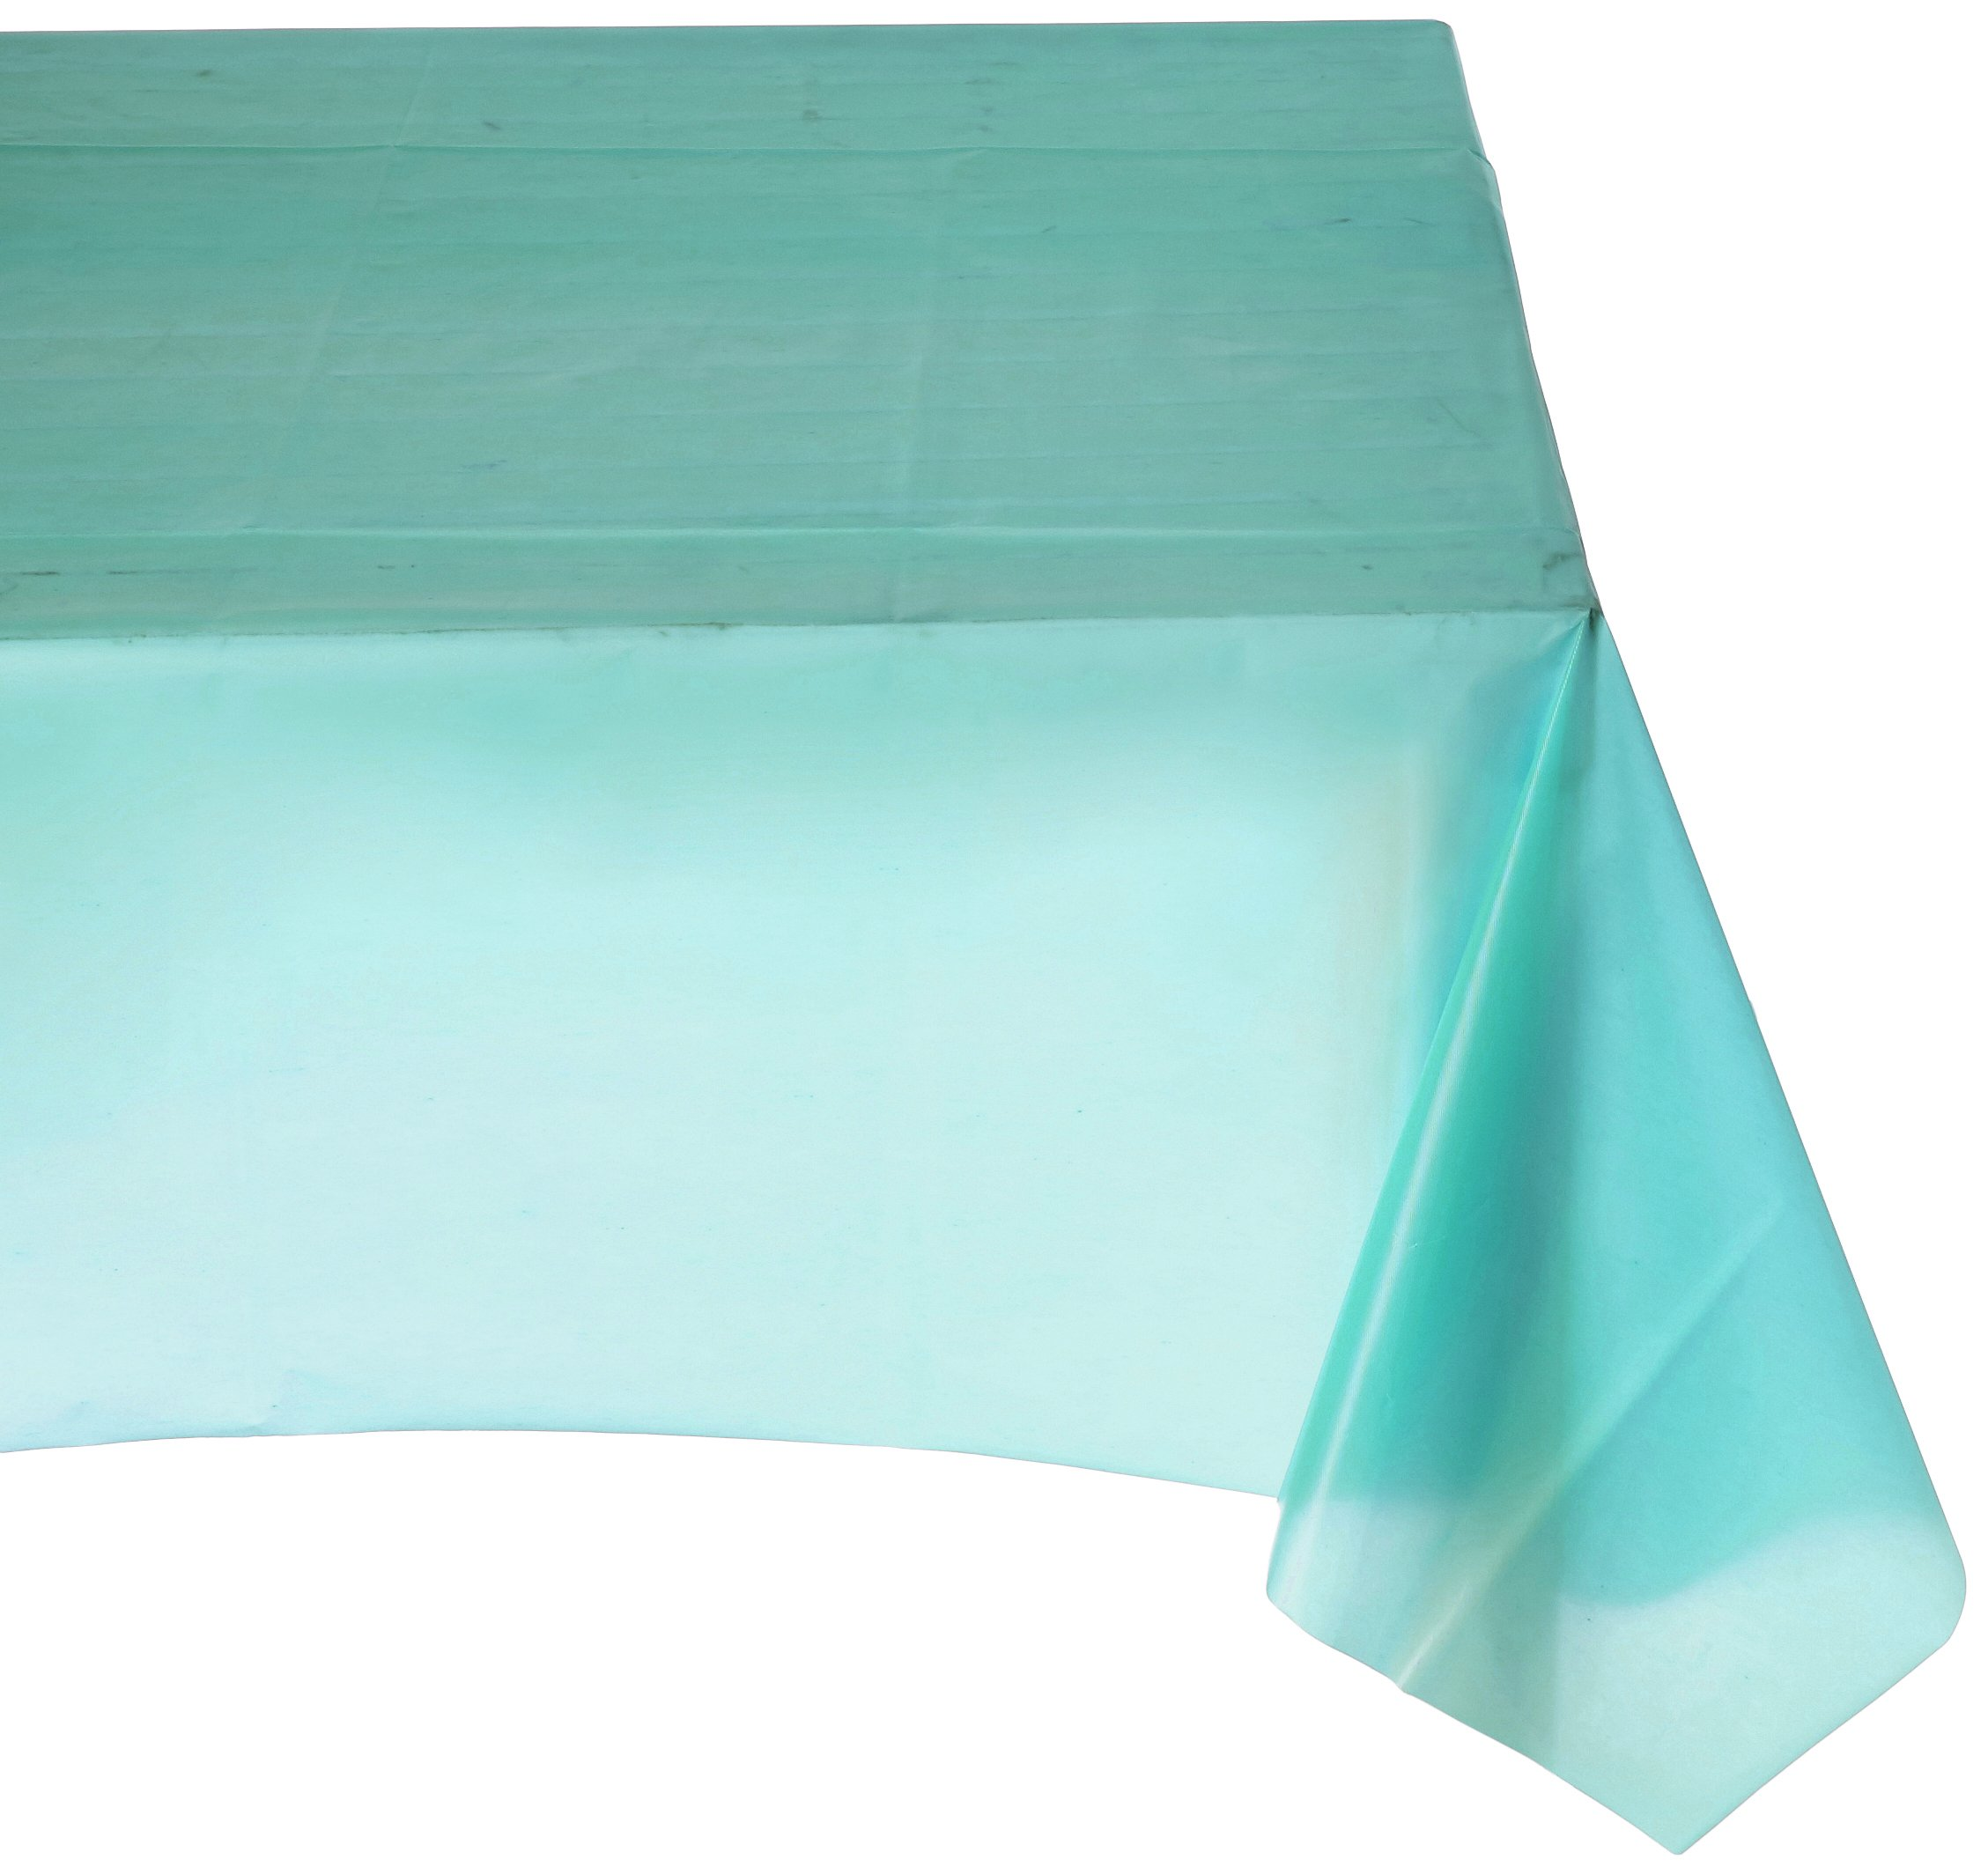 "Amscan Reusable Rectangular Plastic Lace Table Skirt Tableware 108"" Robin Egg Blue by Amscan"